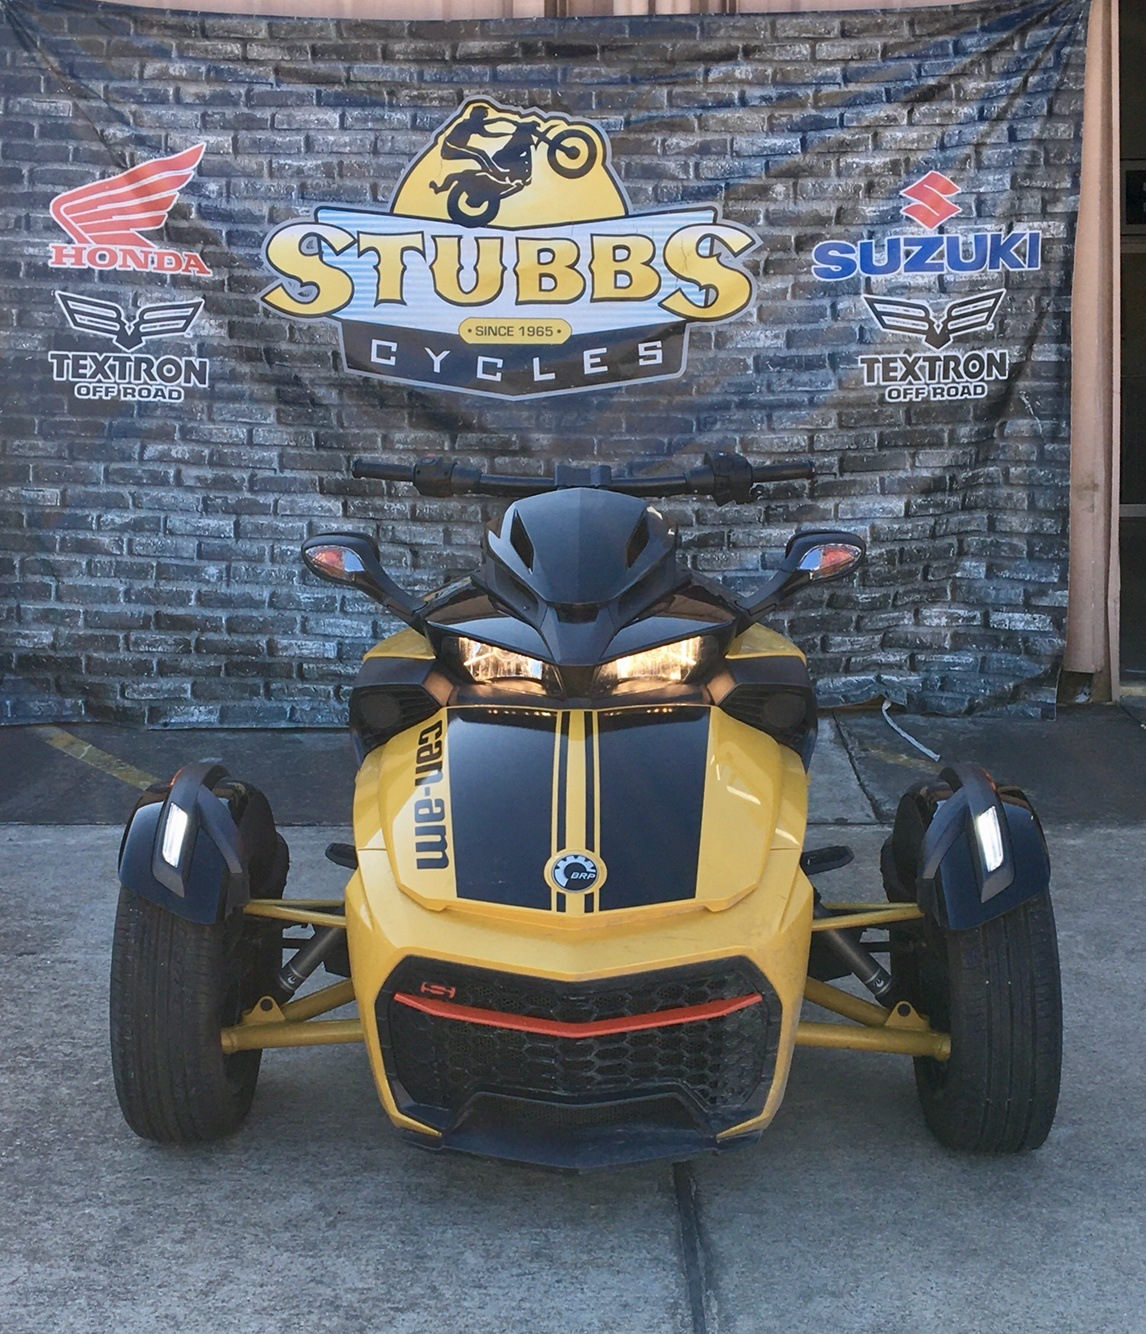 2016 Can-Am Spyder F3 SE6 in Houston, Texas - Photo 3